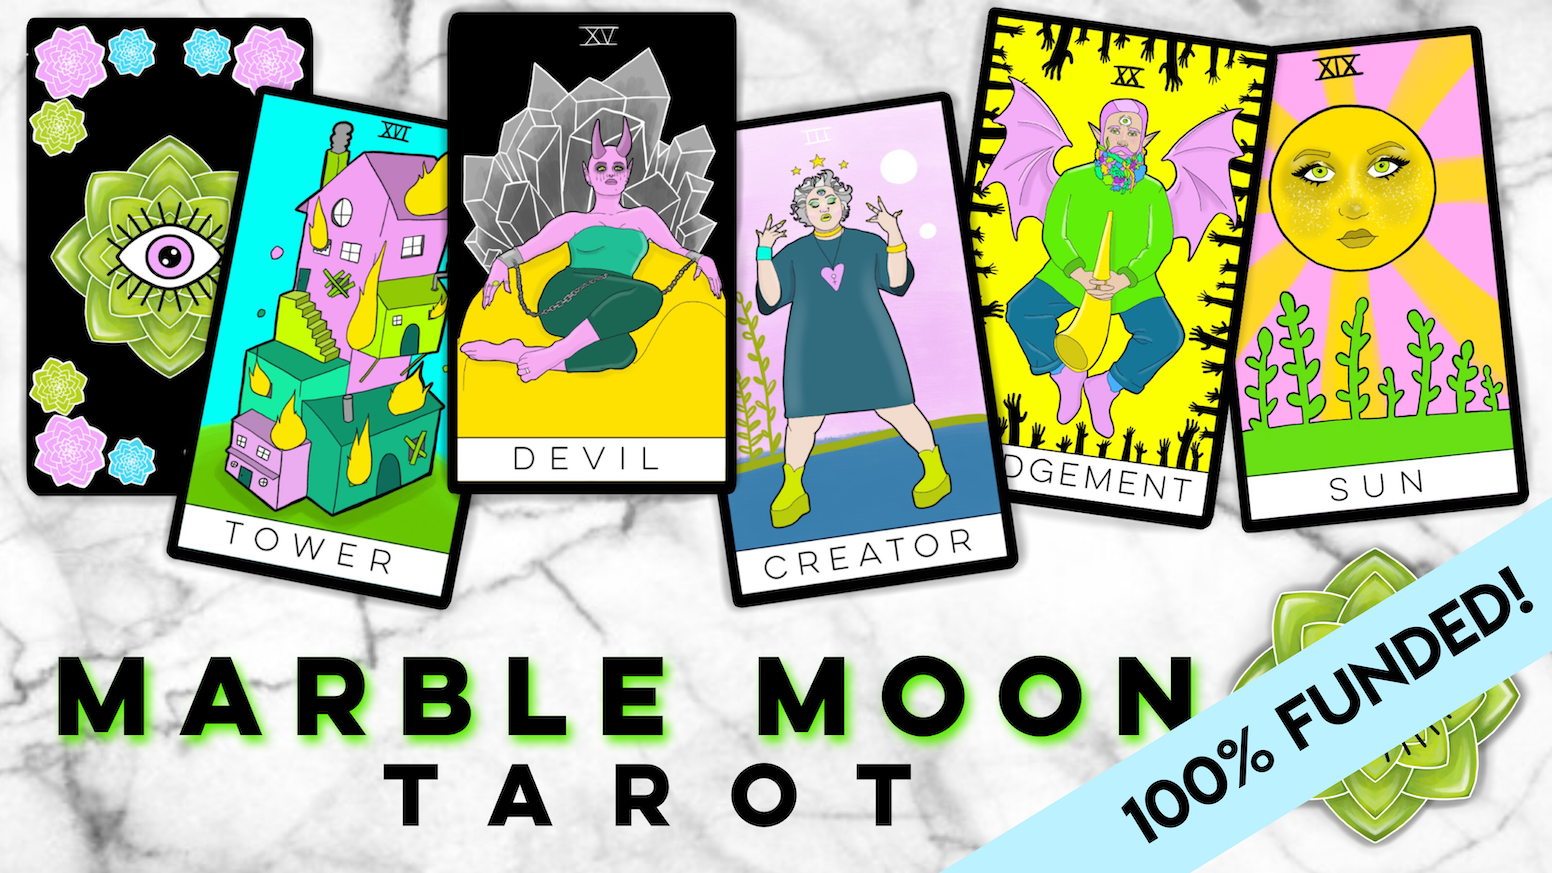 A fantastical tarot deck that focuses on inclusivity, diversity, and whimsy, as well as breaking out of the traditional gender binary.